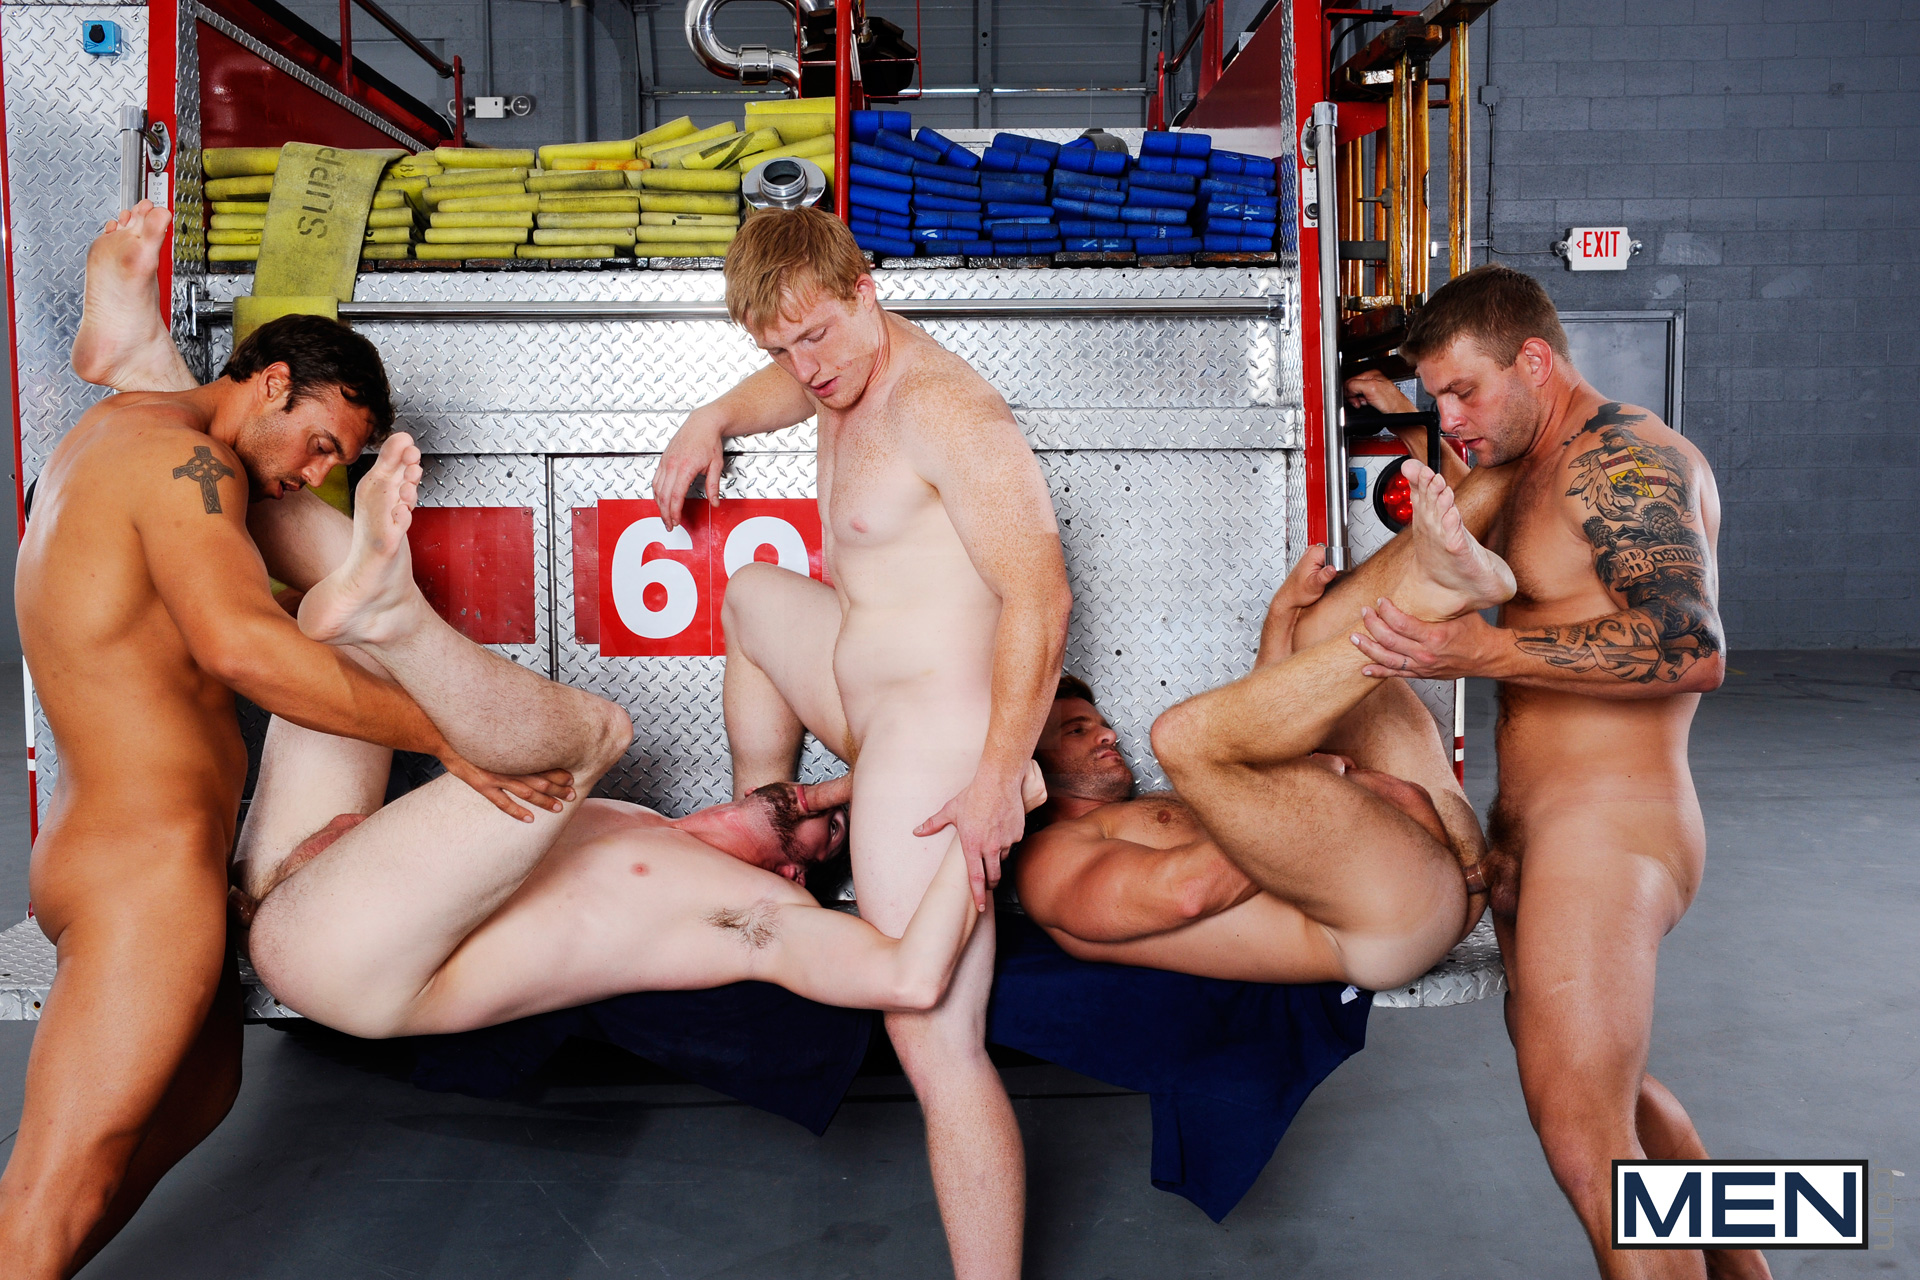 hitchhiker-sex-firefighter-porn